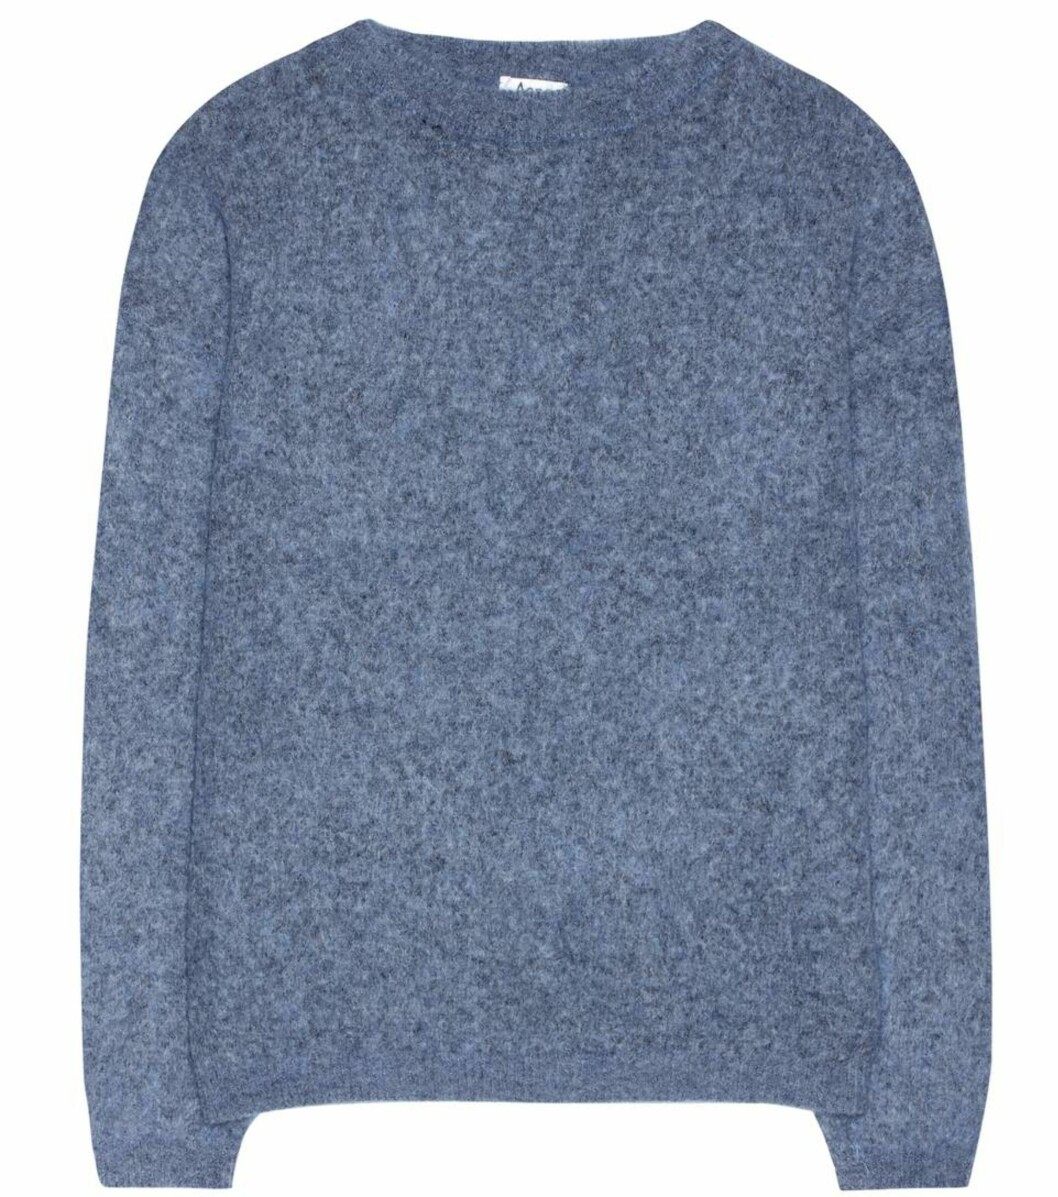 Genser fra Acne Studios via Mytheresa.com |2215,-|https://www.mytheresa.com/eu_en/acne-studios-dramatic-mohair-and-wool-blend-sweater-804408.html?catref=category